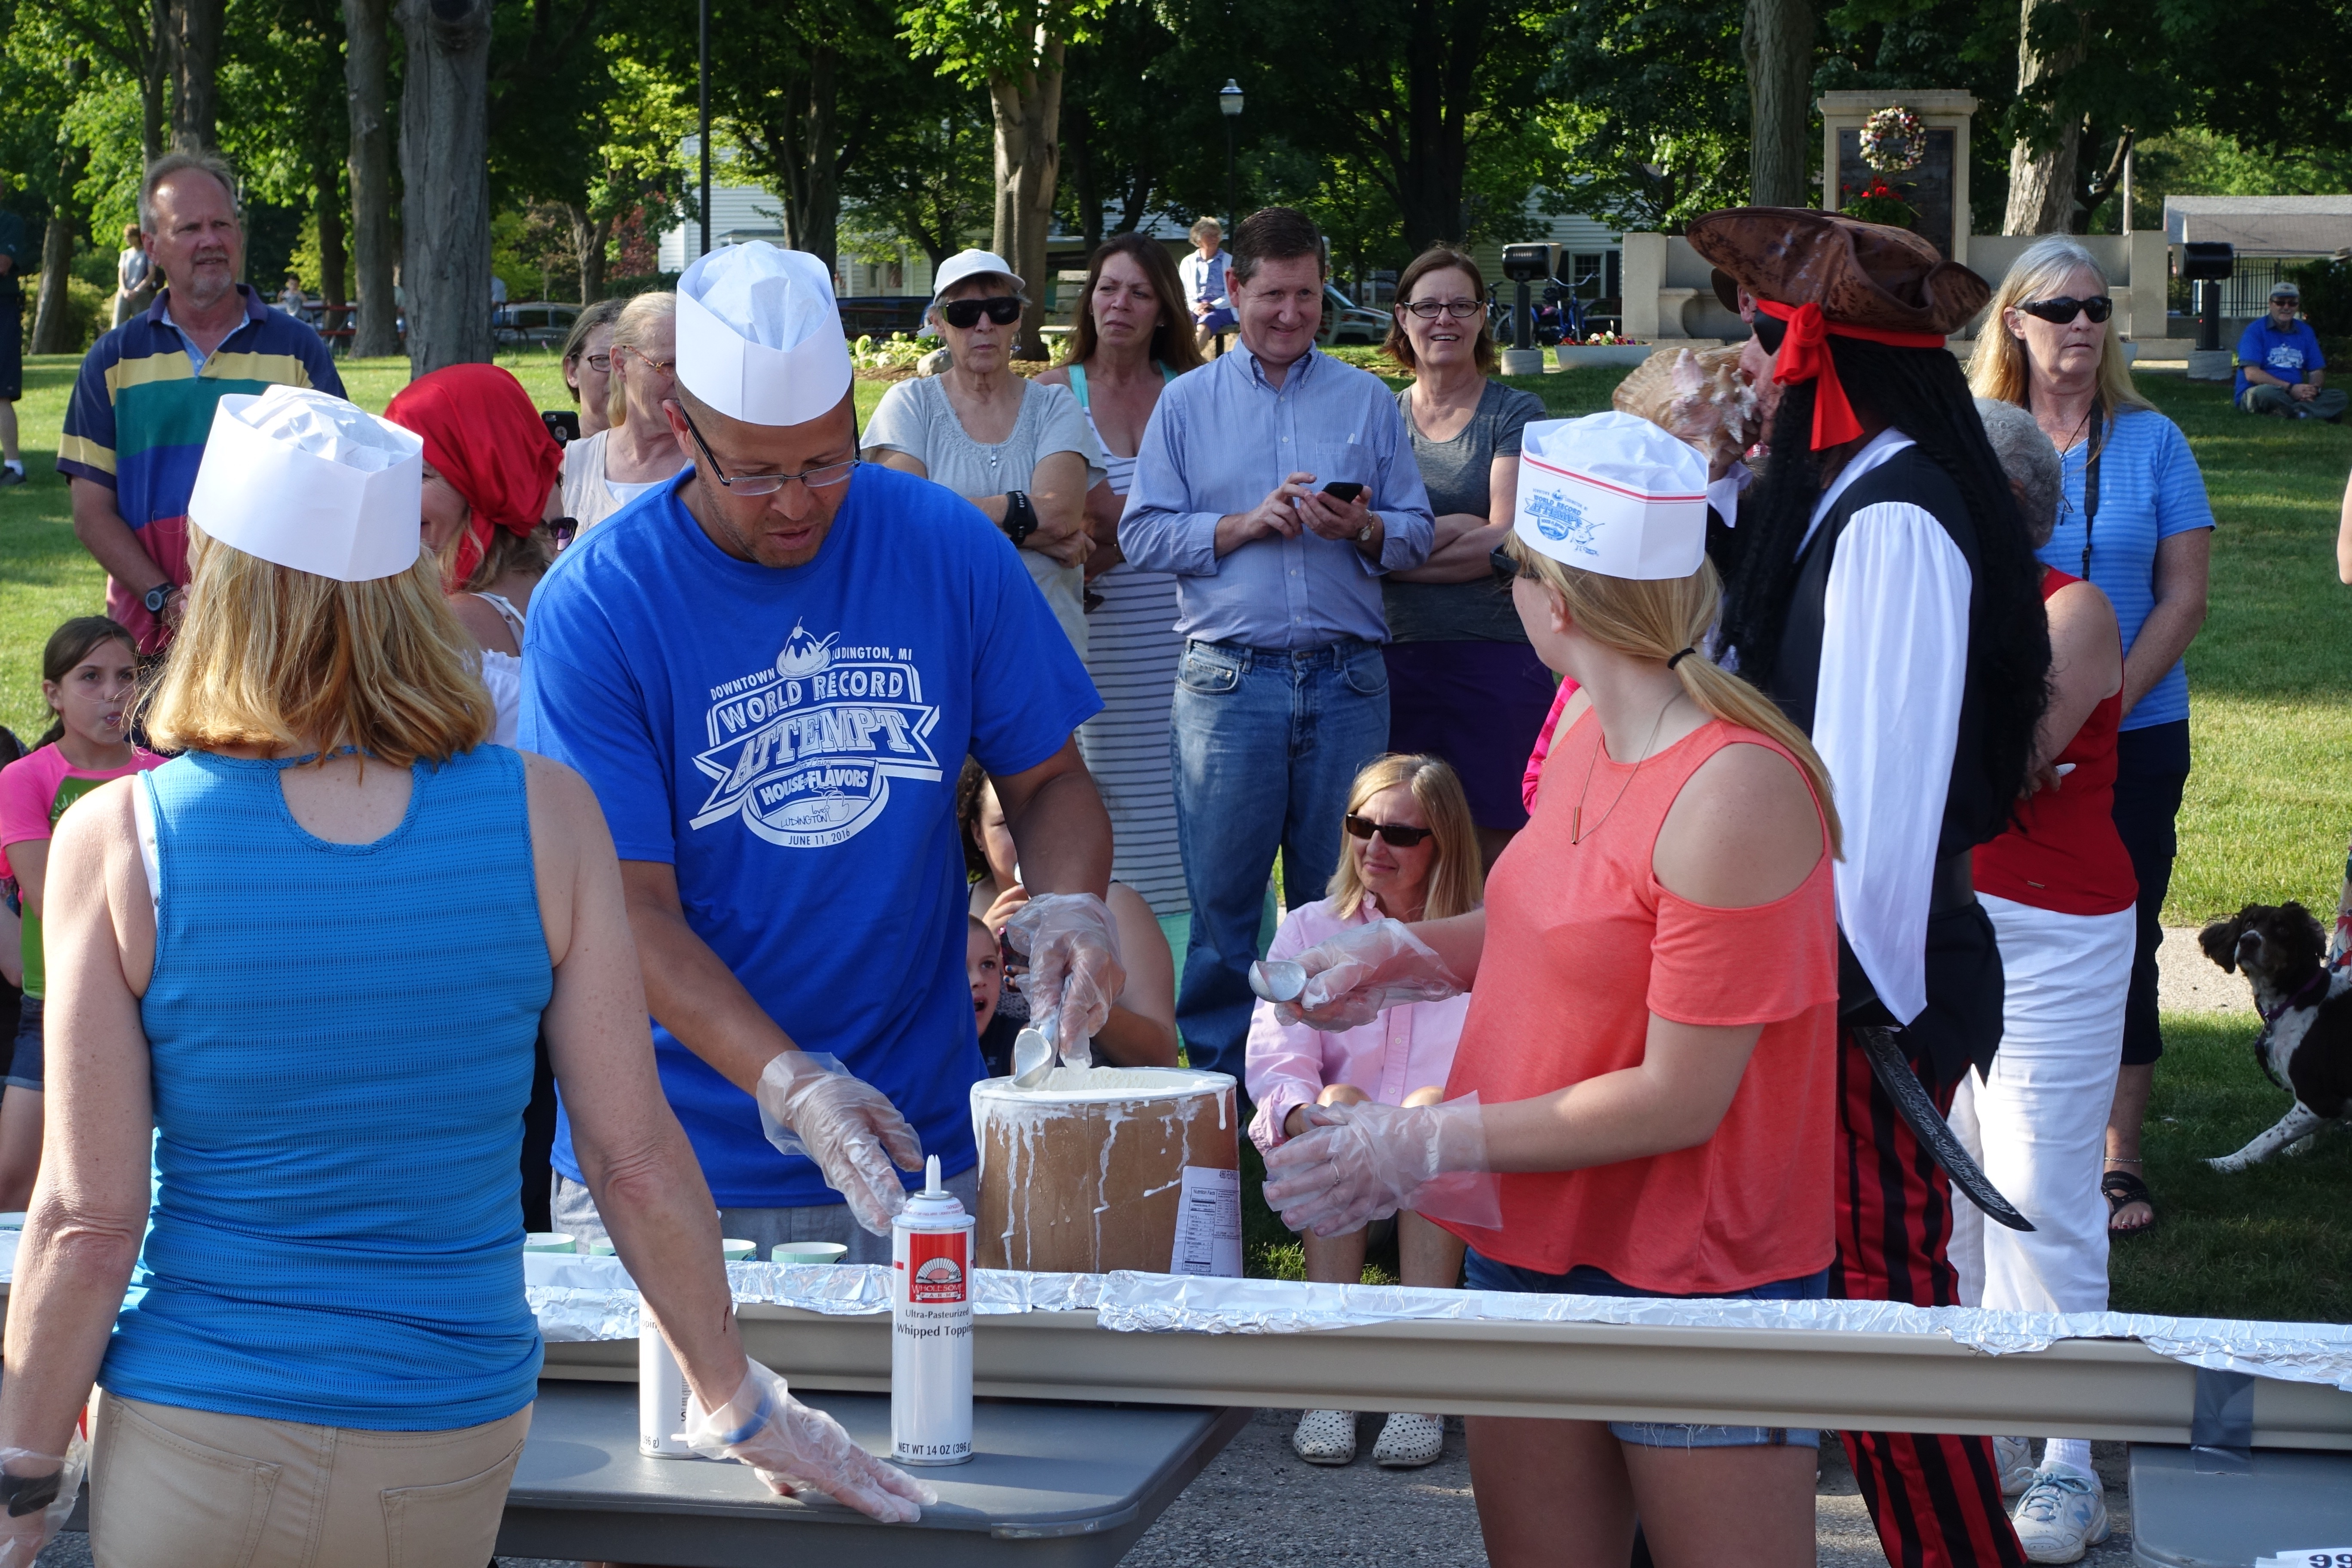 Scooping Out the ice cream at Ludington's World's Largest Sundae Attempt